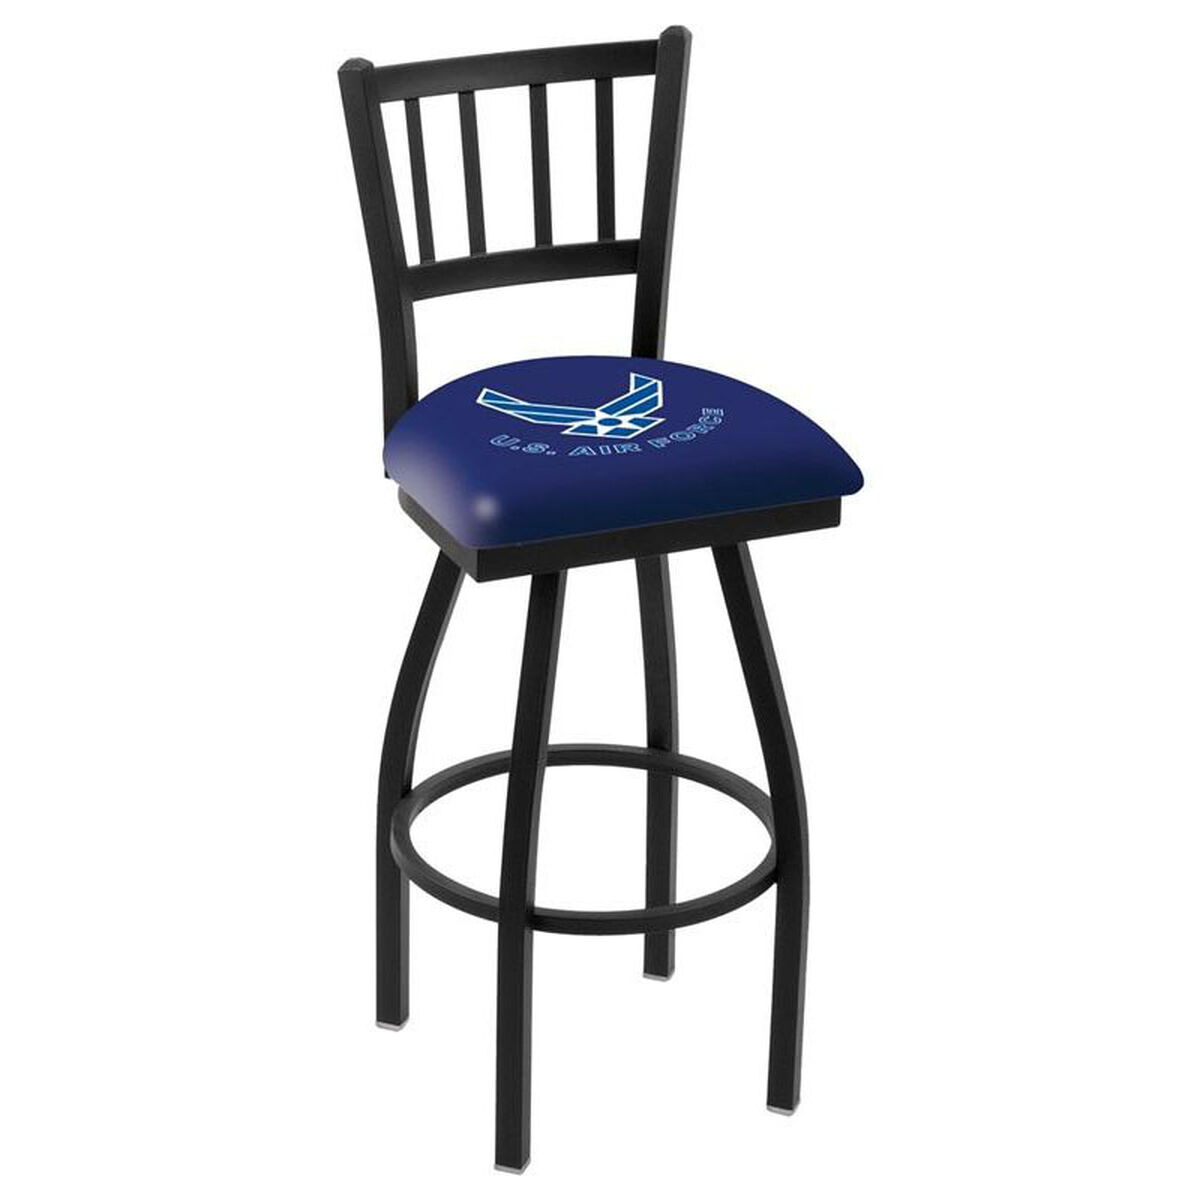 Usaf Swivel Counter Stool L01825airfor Bizchaircom